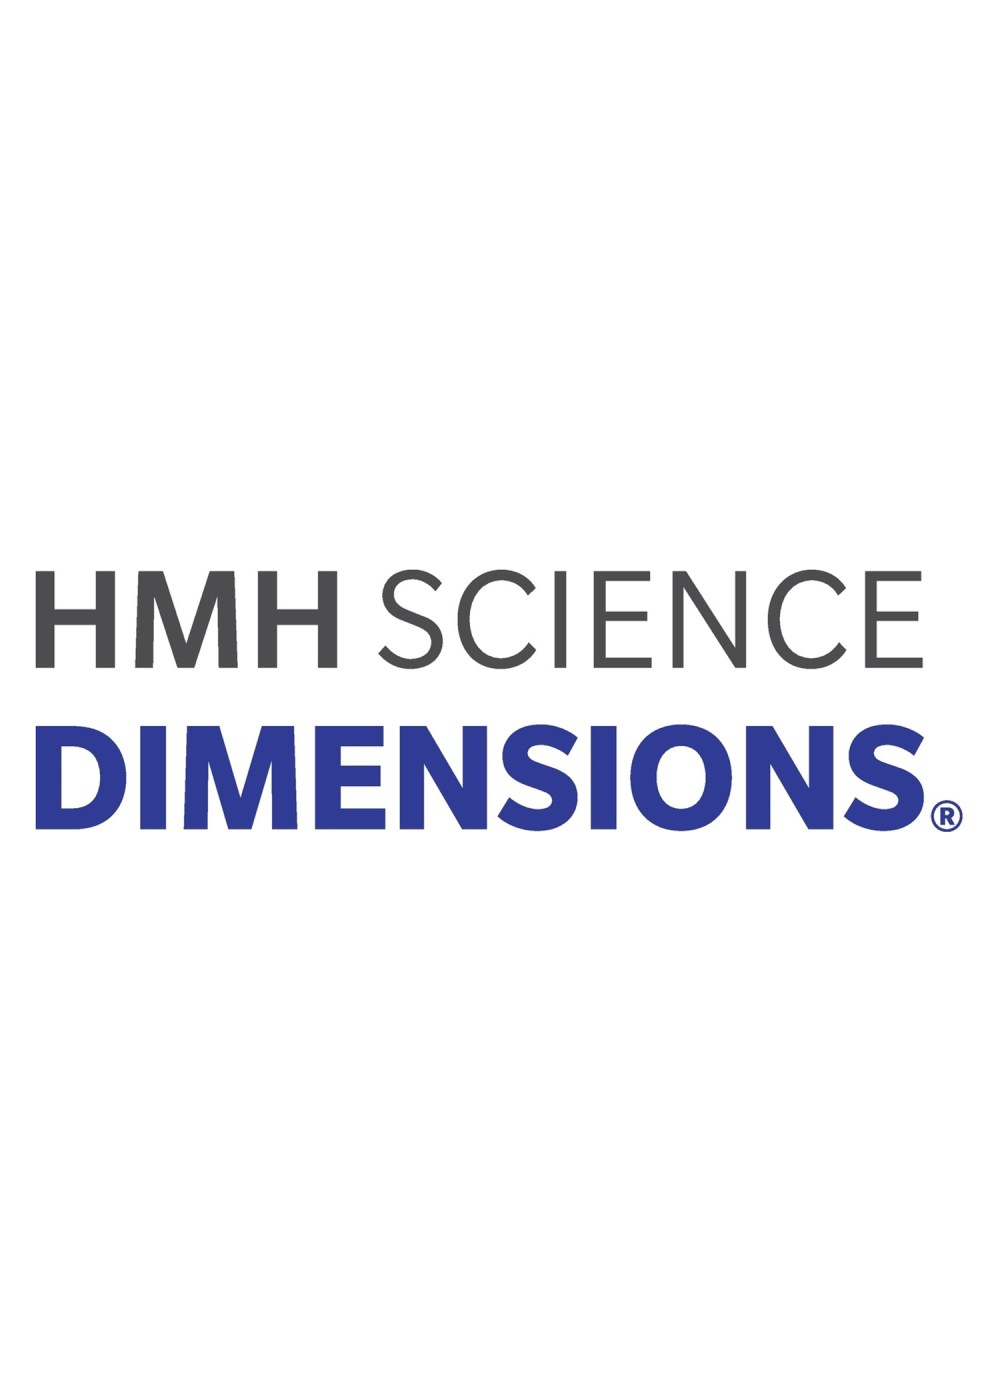 medium resolution of HMH Science Dimensions® Grades 6-8 (2018) - Sixth to Eighth Report